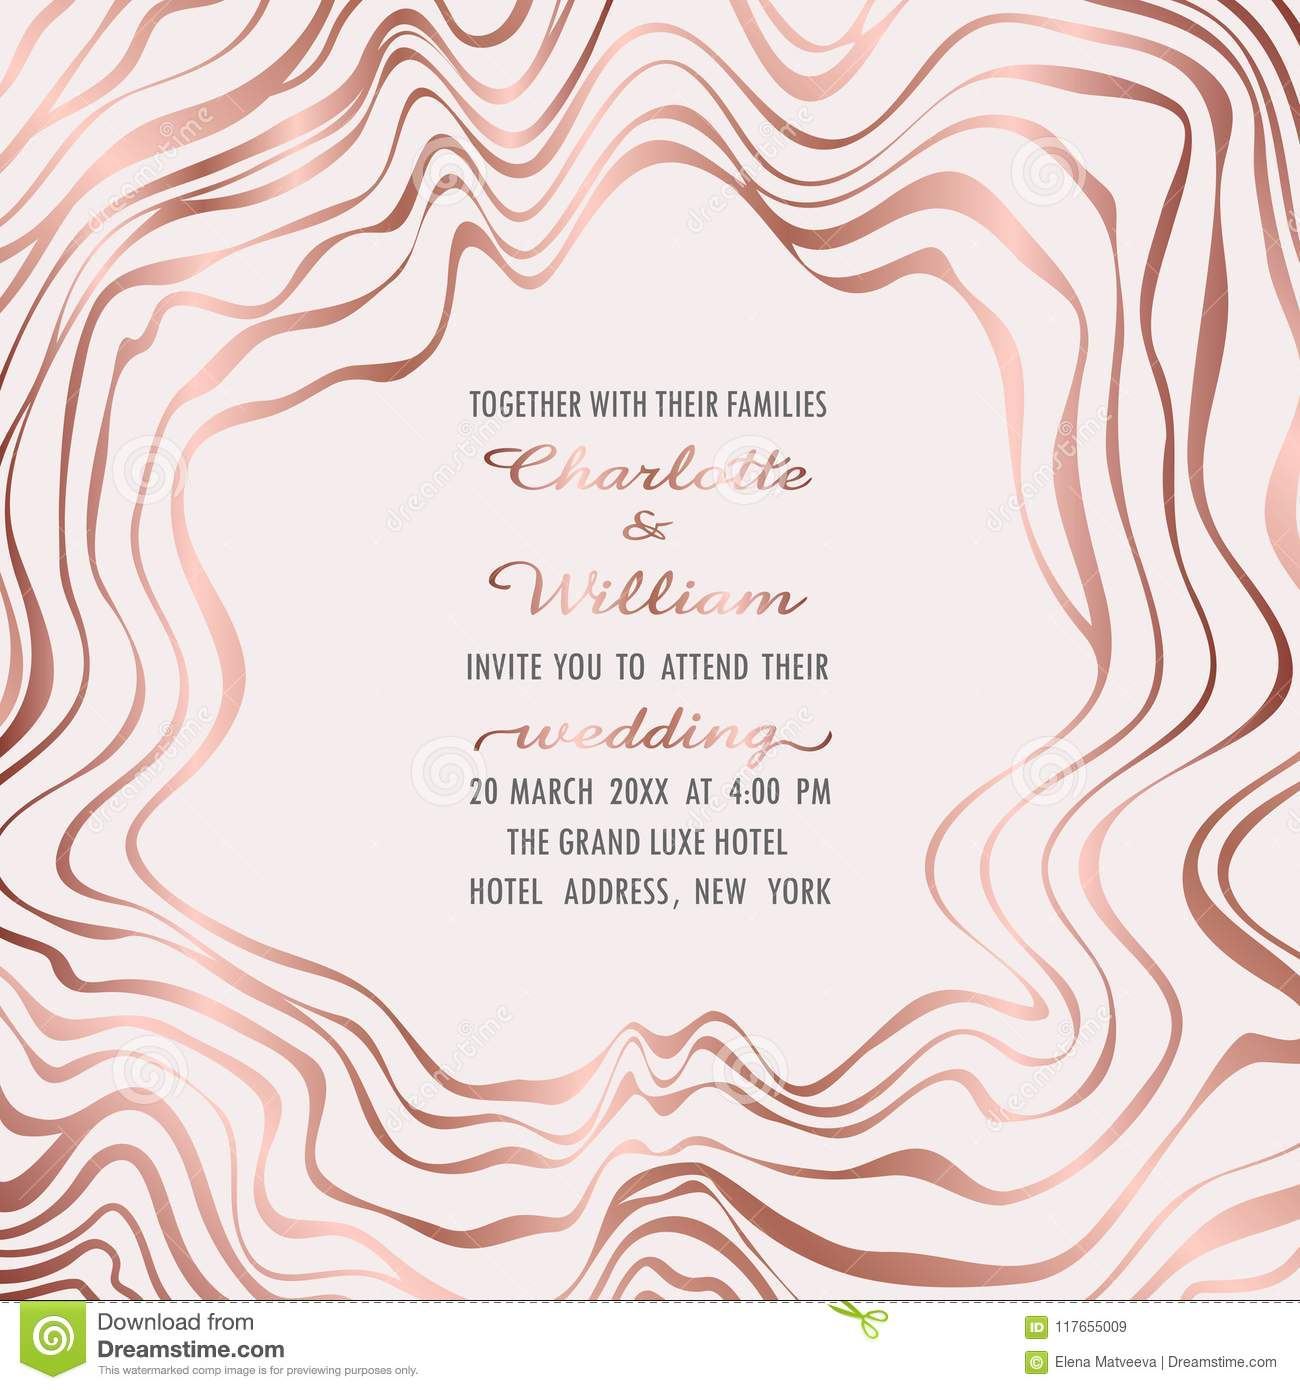 b459ced721d8 Wedding invitation card with pink gold waves frame on gentle pink background.  Fashion greeting invite